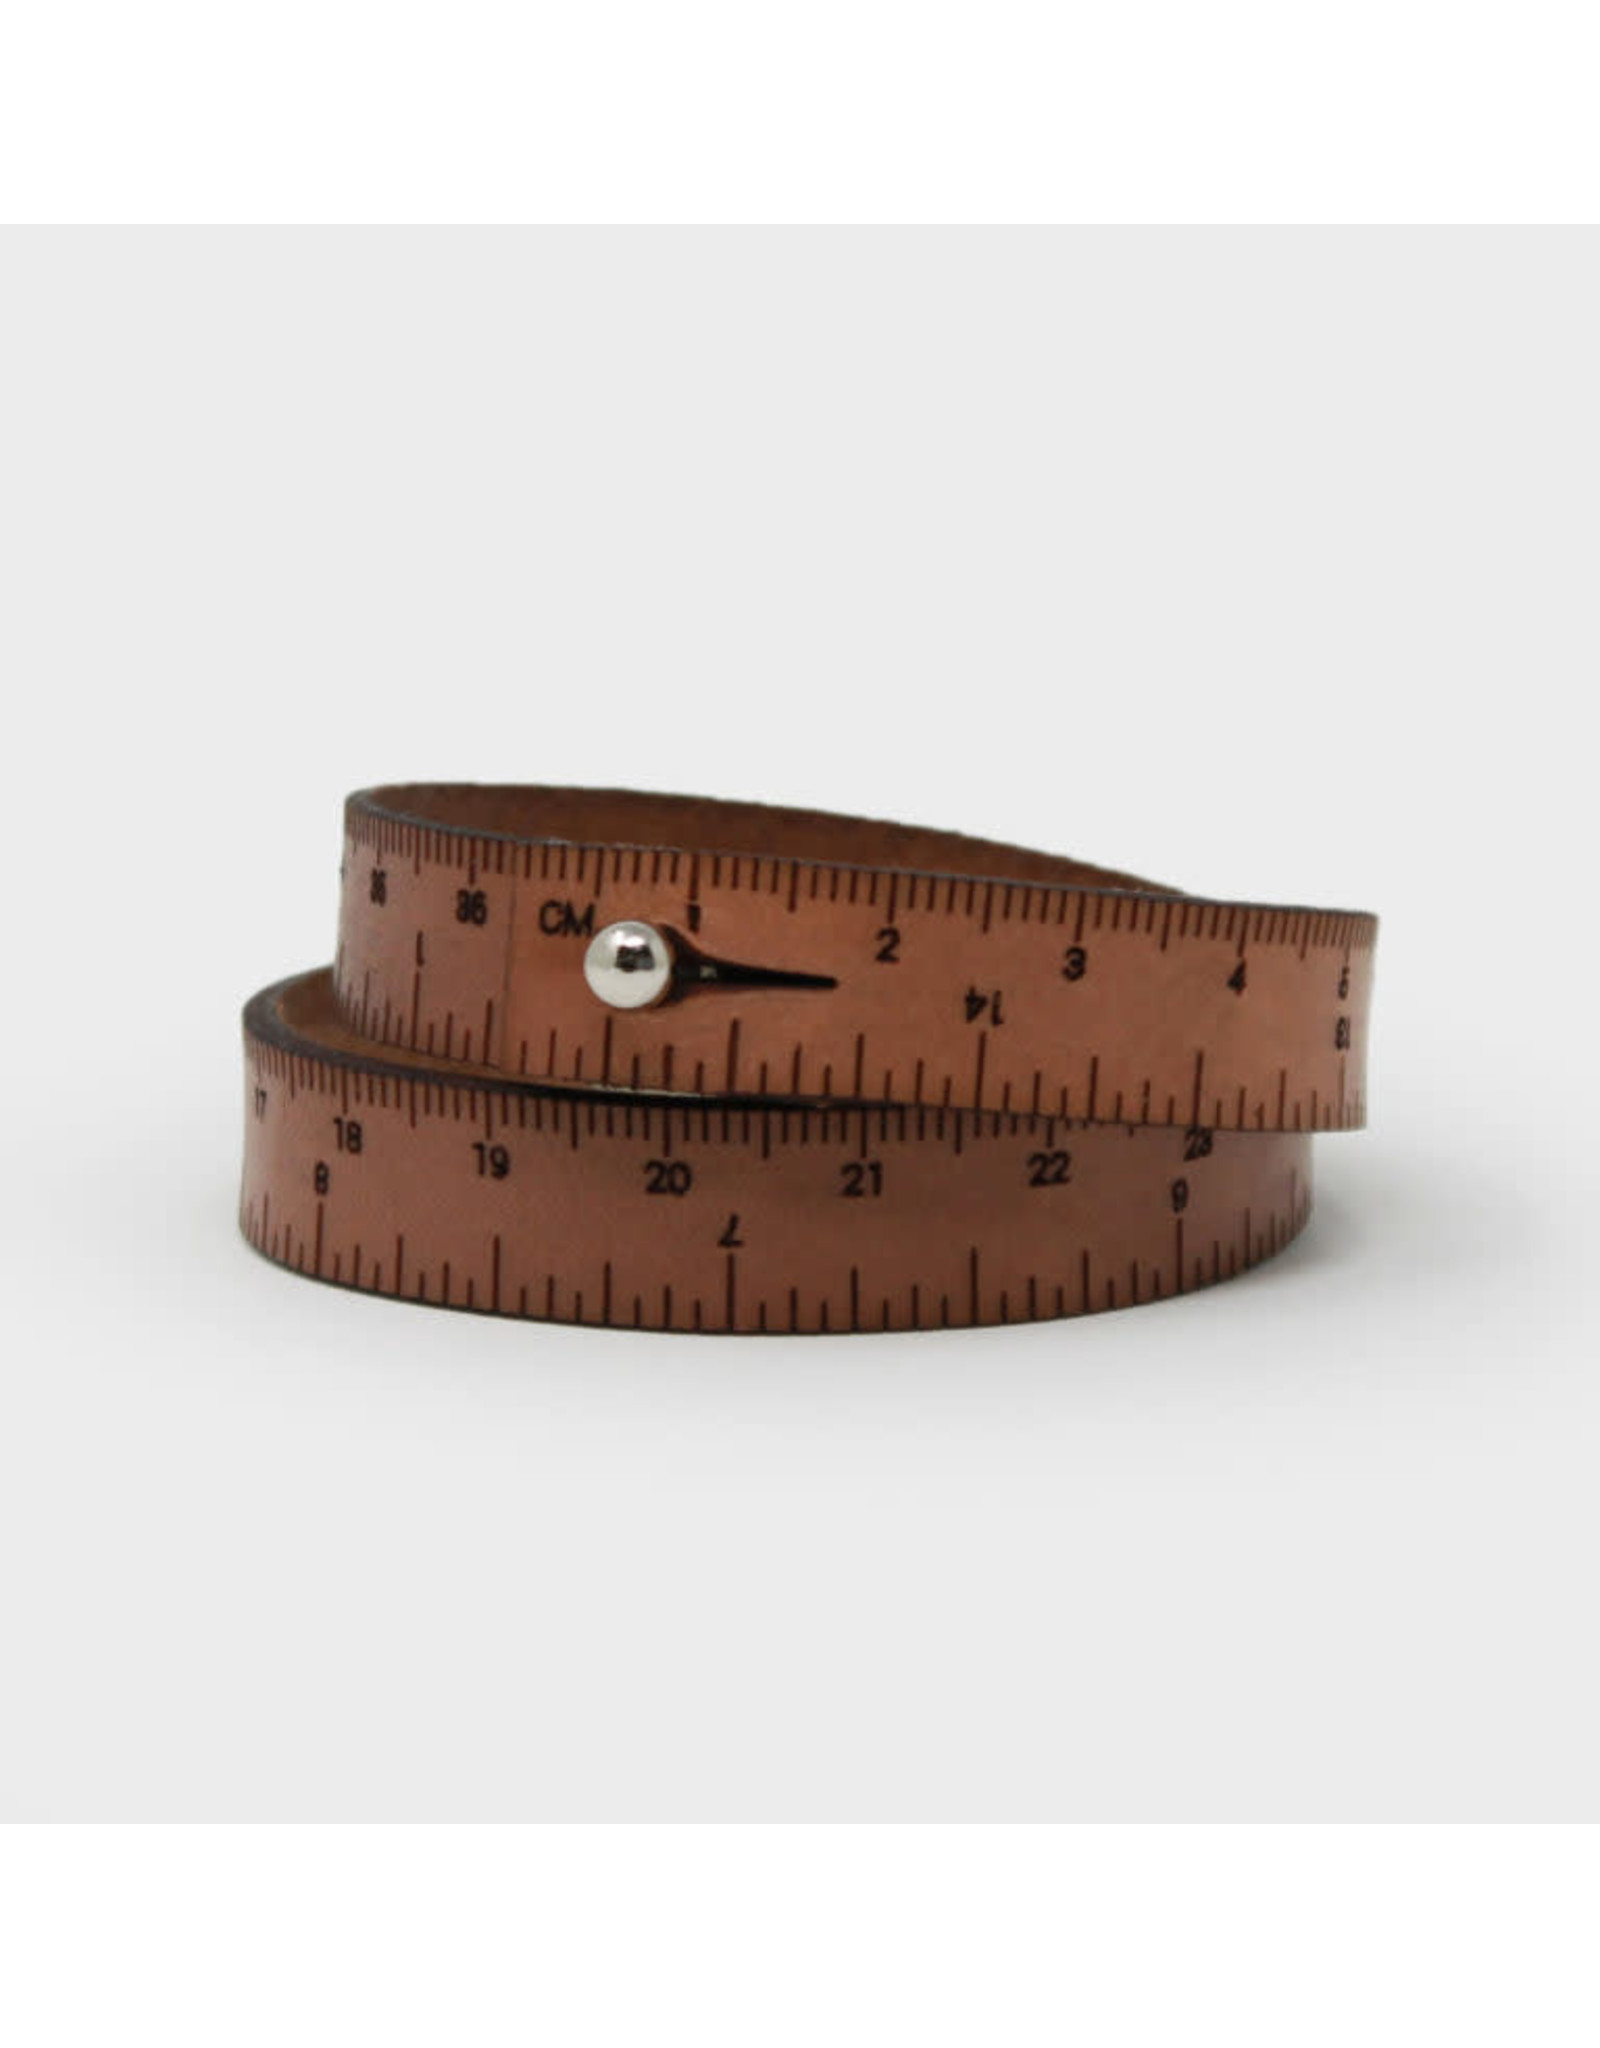 Wrist Ruler - MEDIUM BROWN - 16 inches